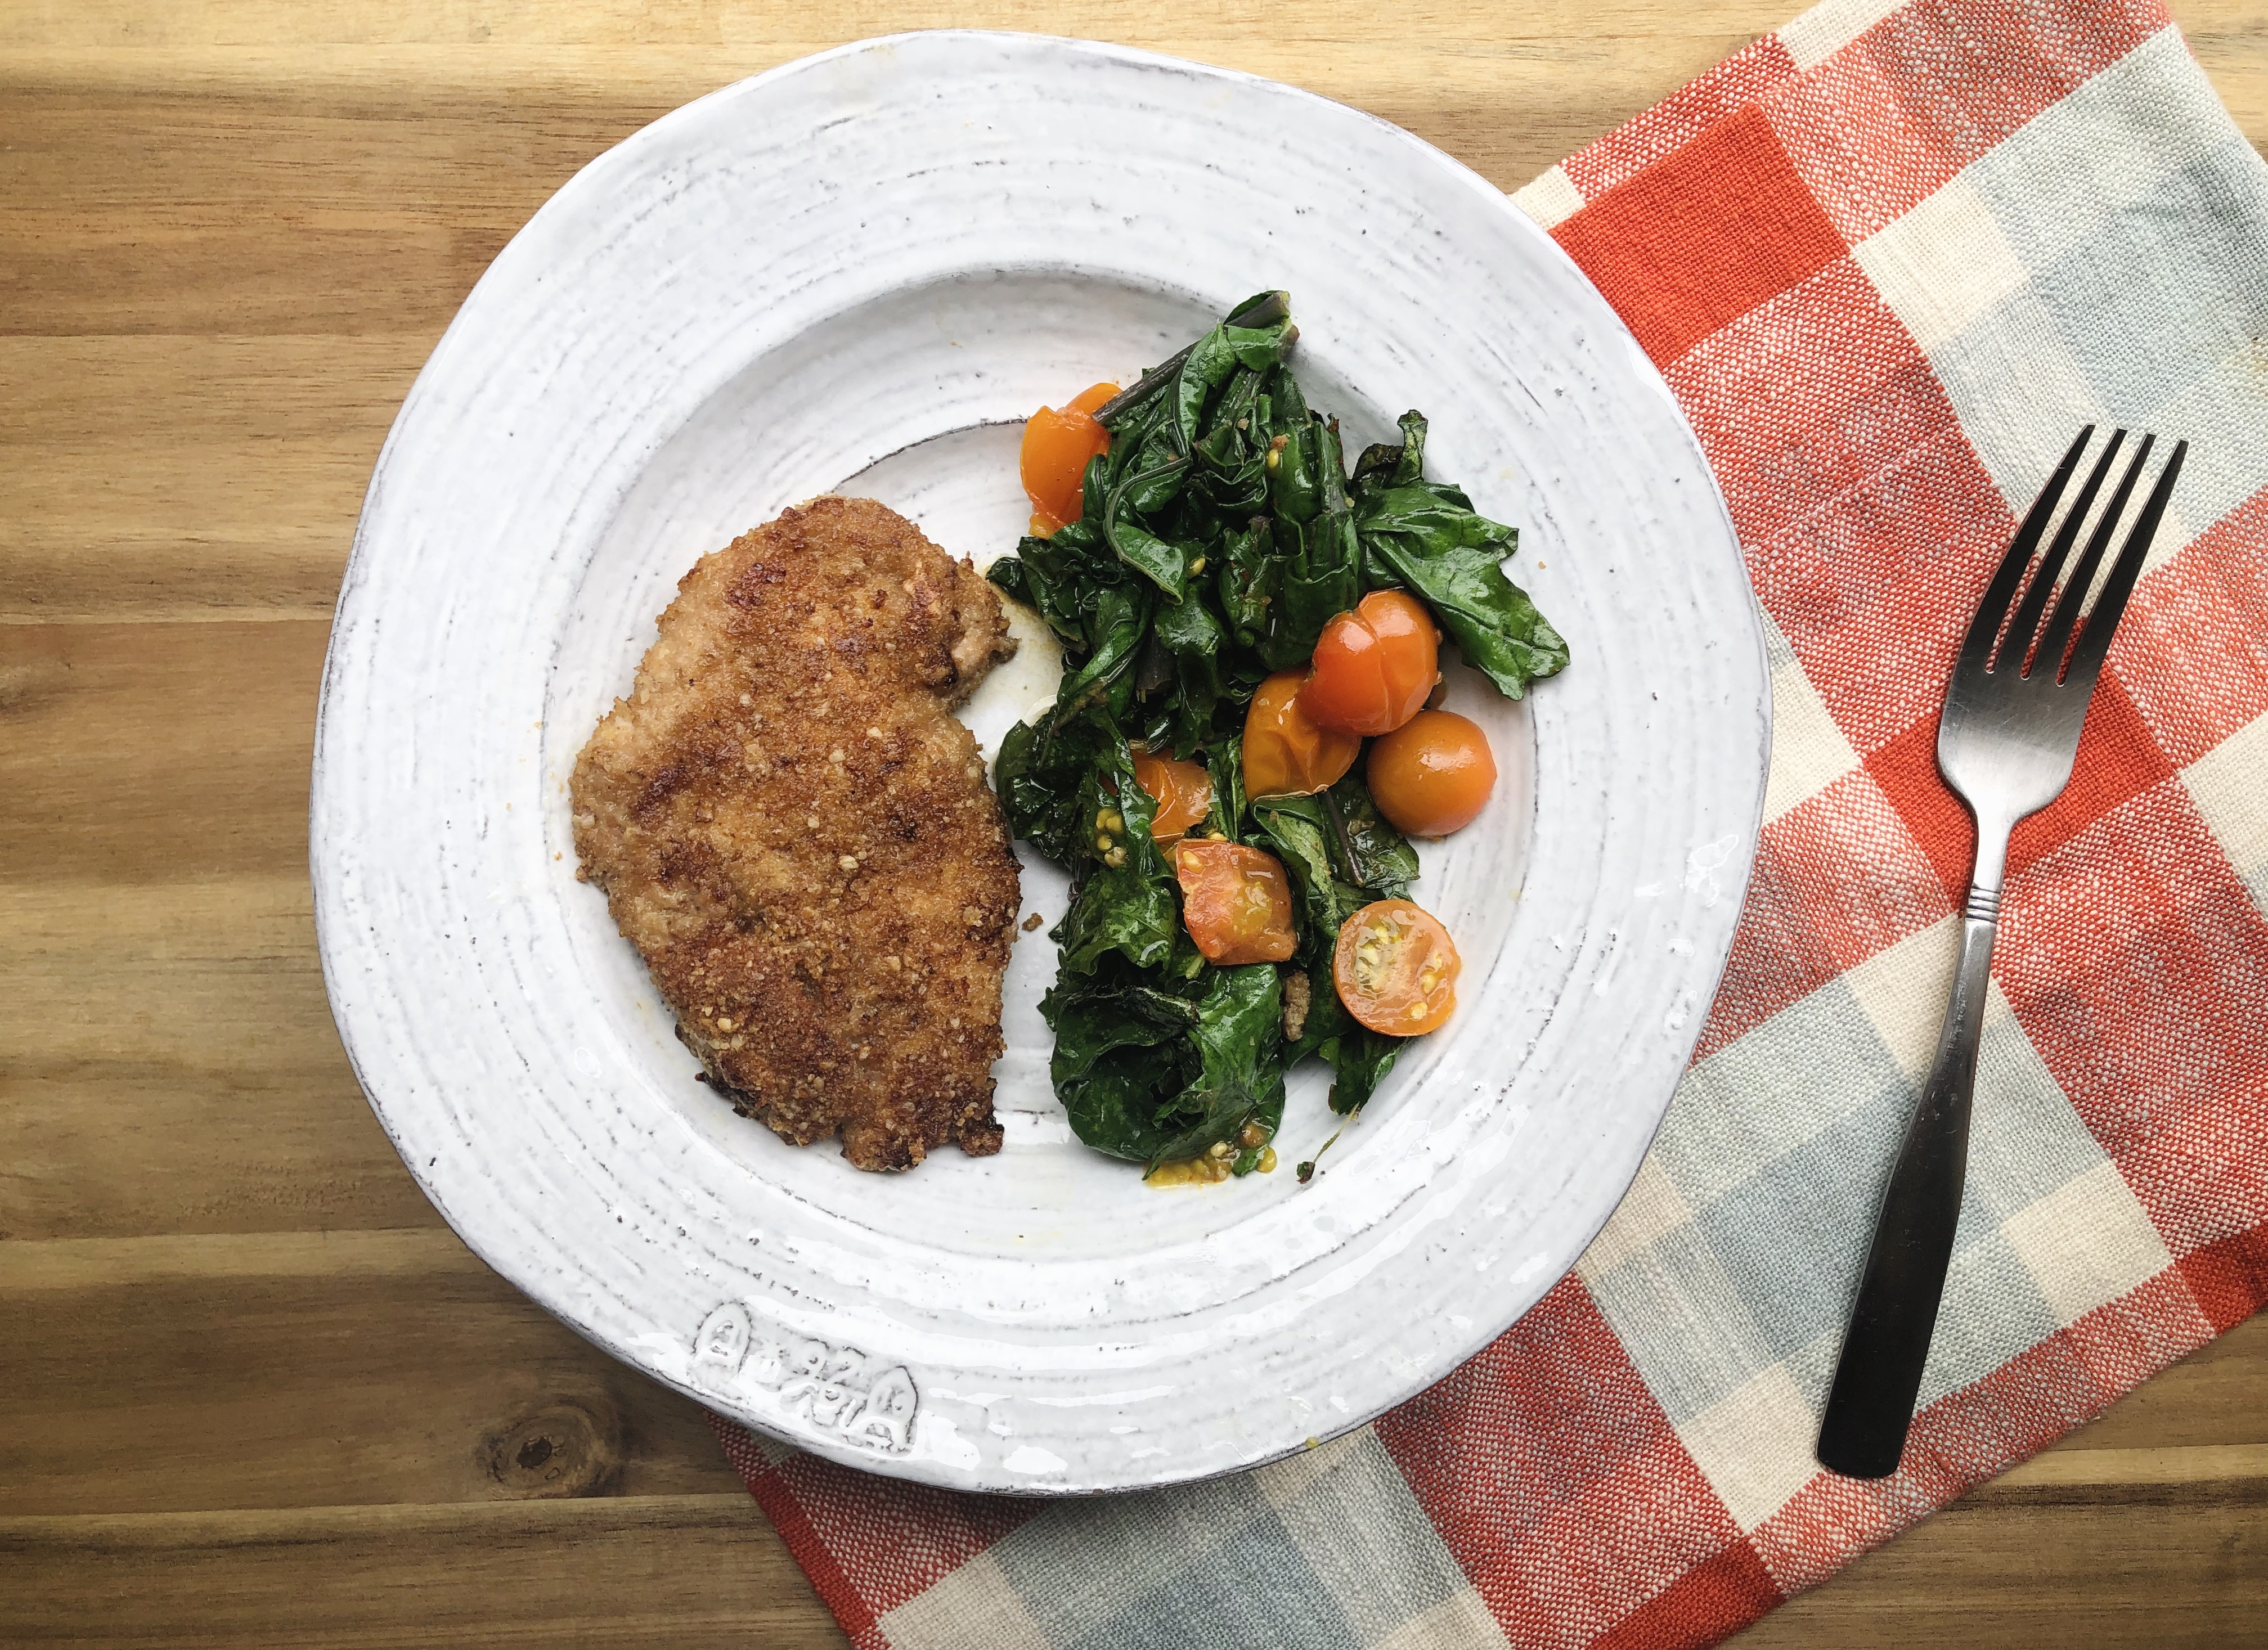 walnut crusted chicken with collards on white plate